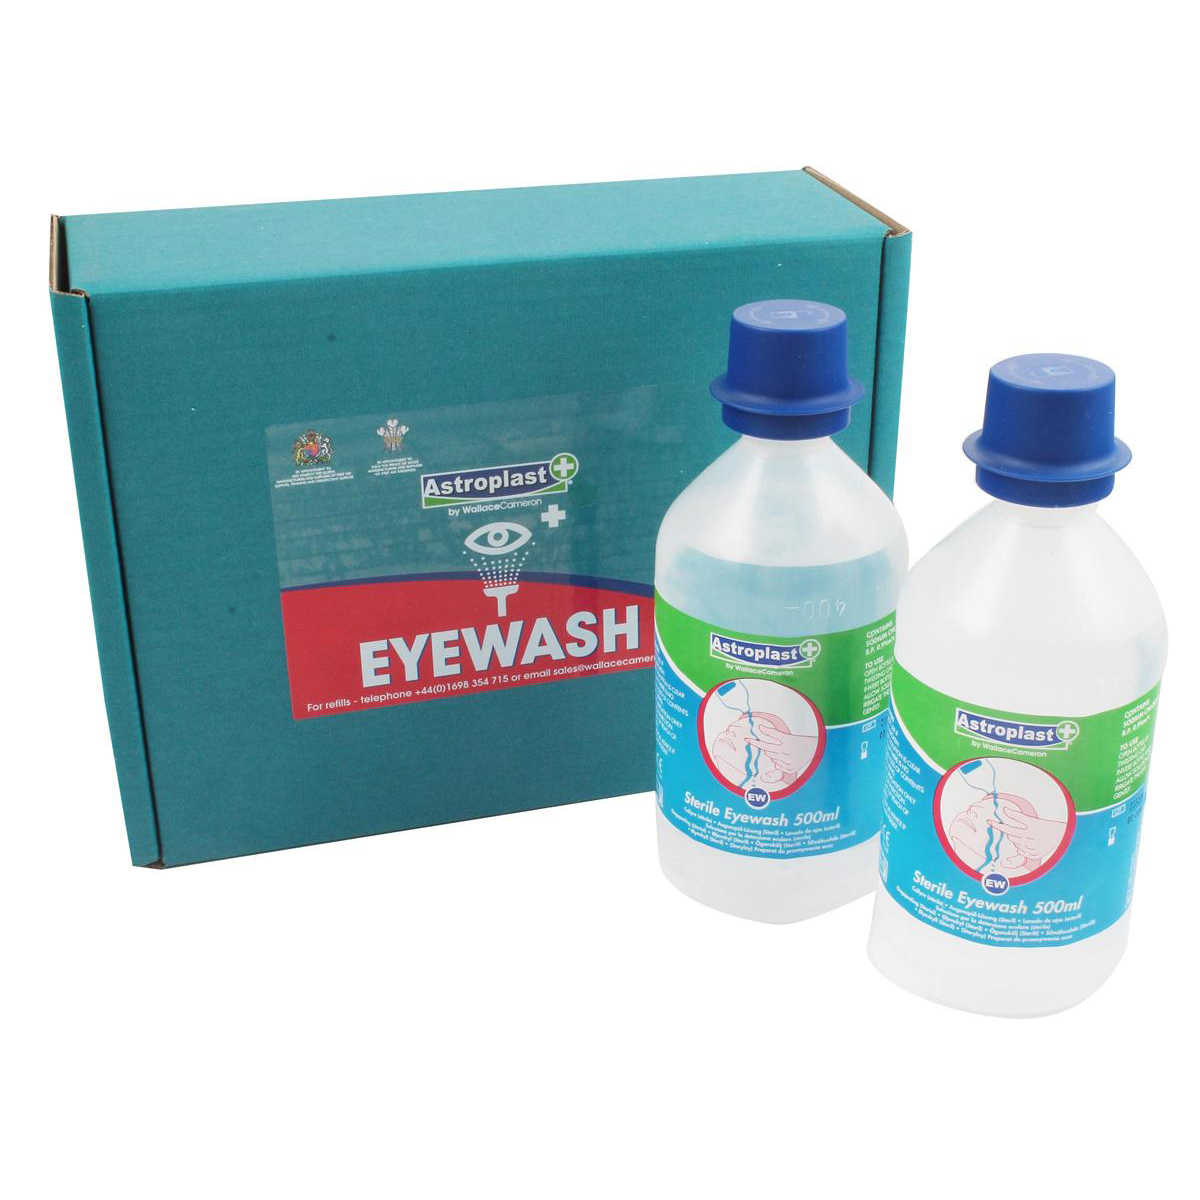 Wallace Cameron Astroplast Eyewash Sterile Water Bottles for Eye Care Disp 500ml Ref 2404039 Pack 2